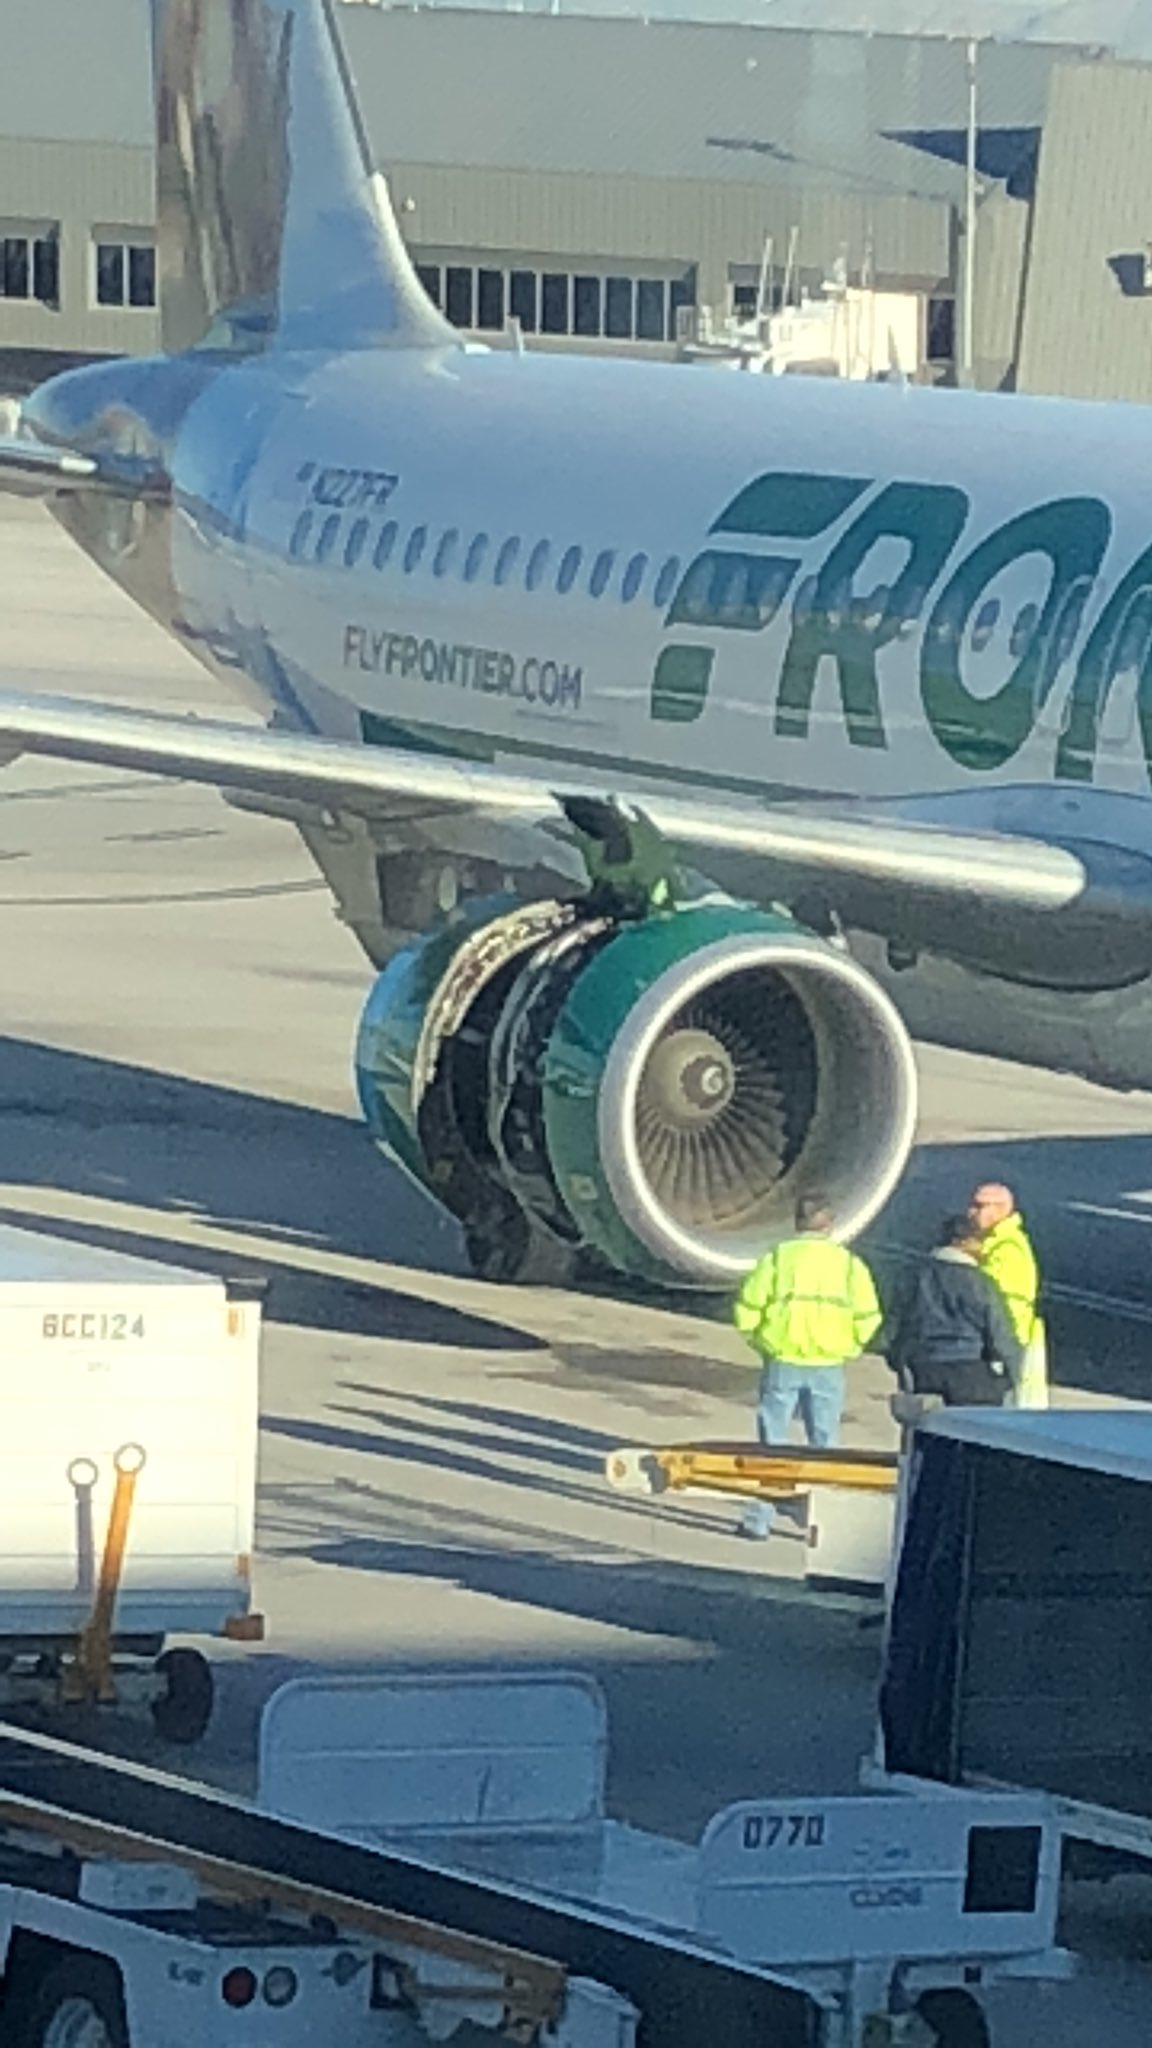 Airbus A320 Family Of Aircraft Engine Fan Cowl Door Loss